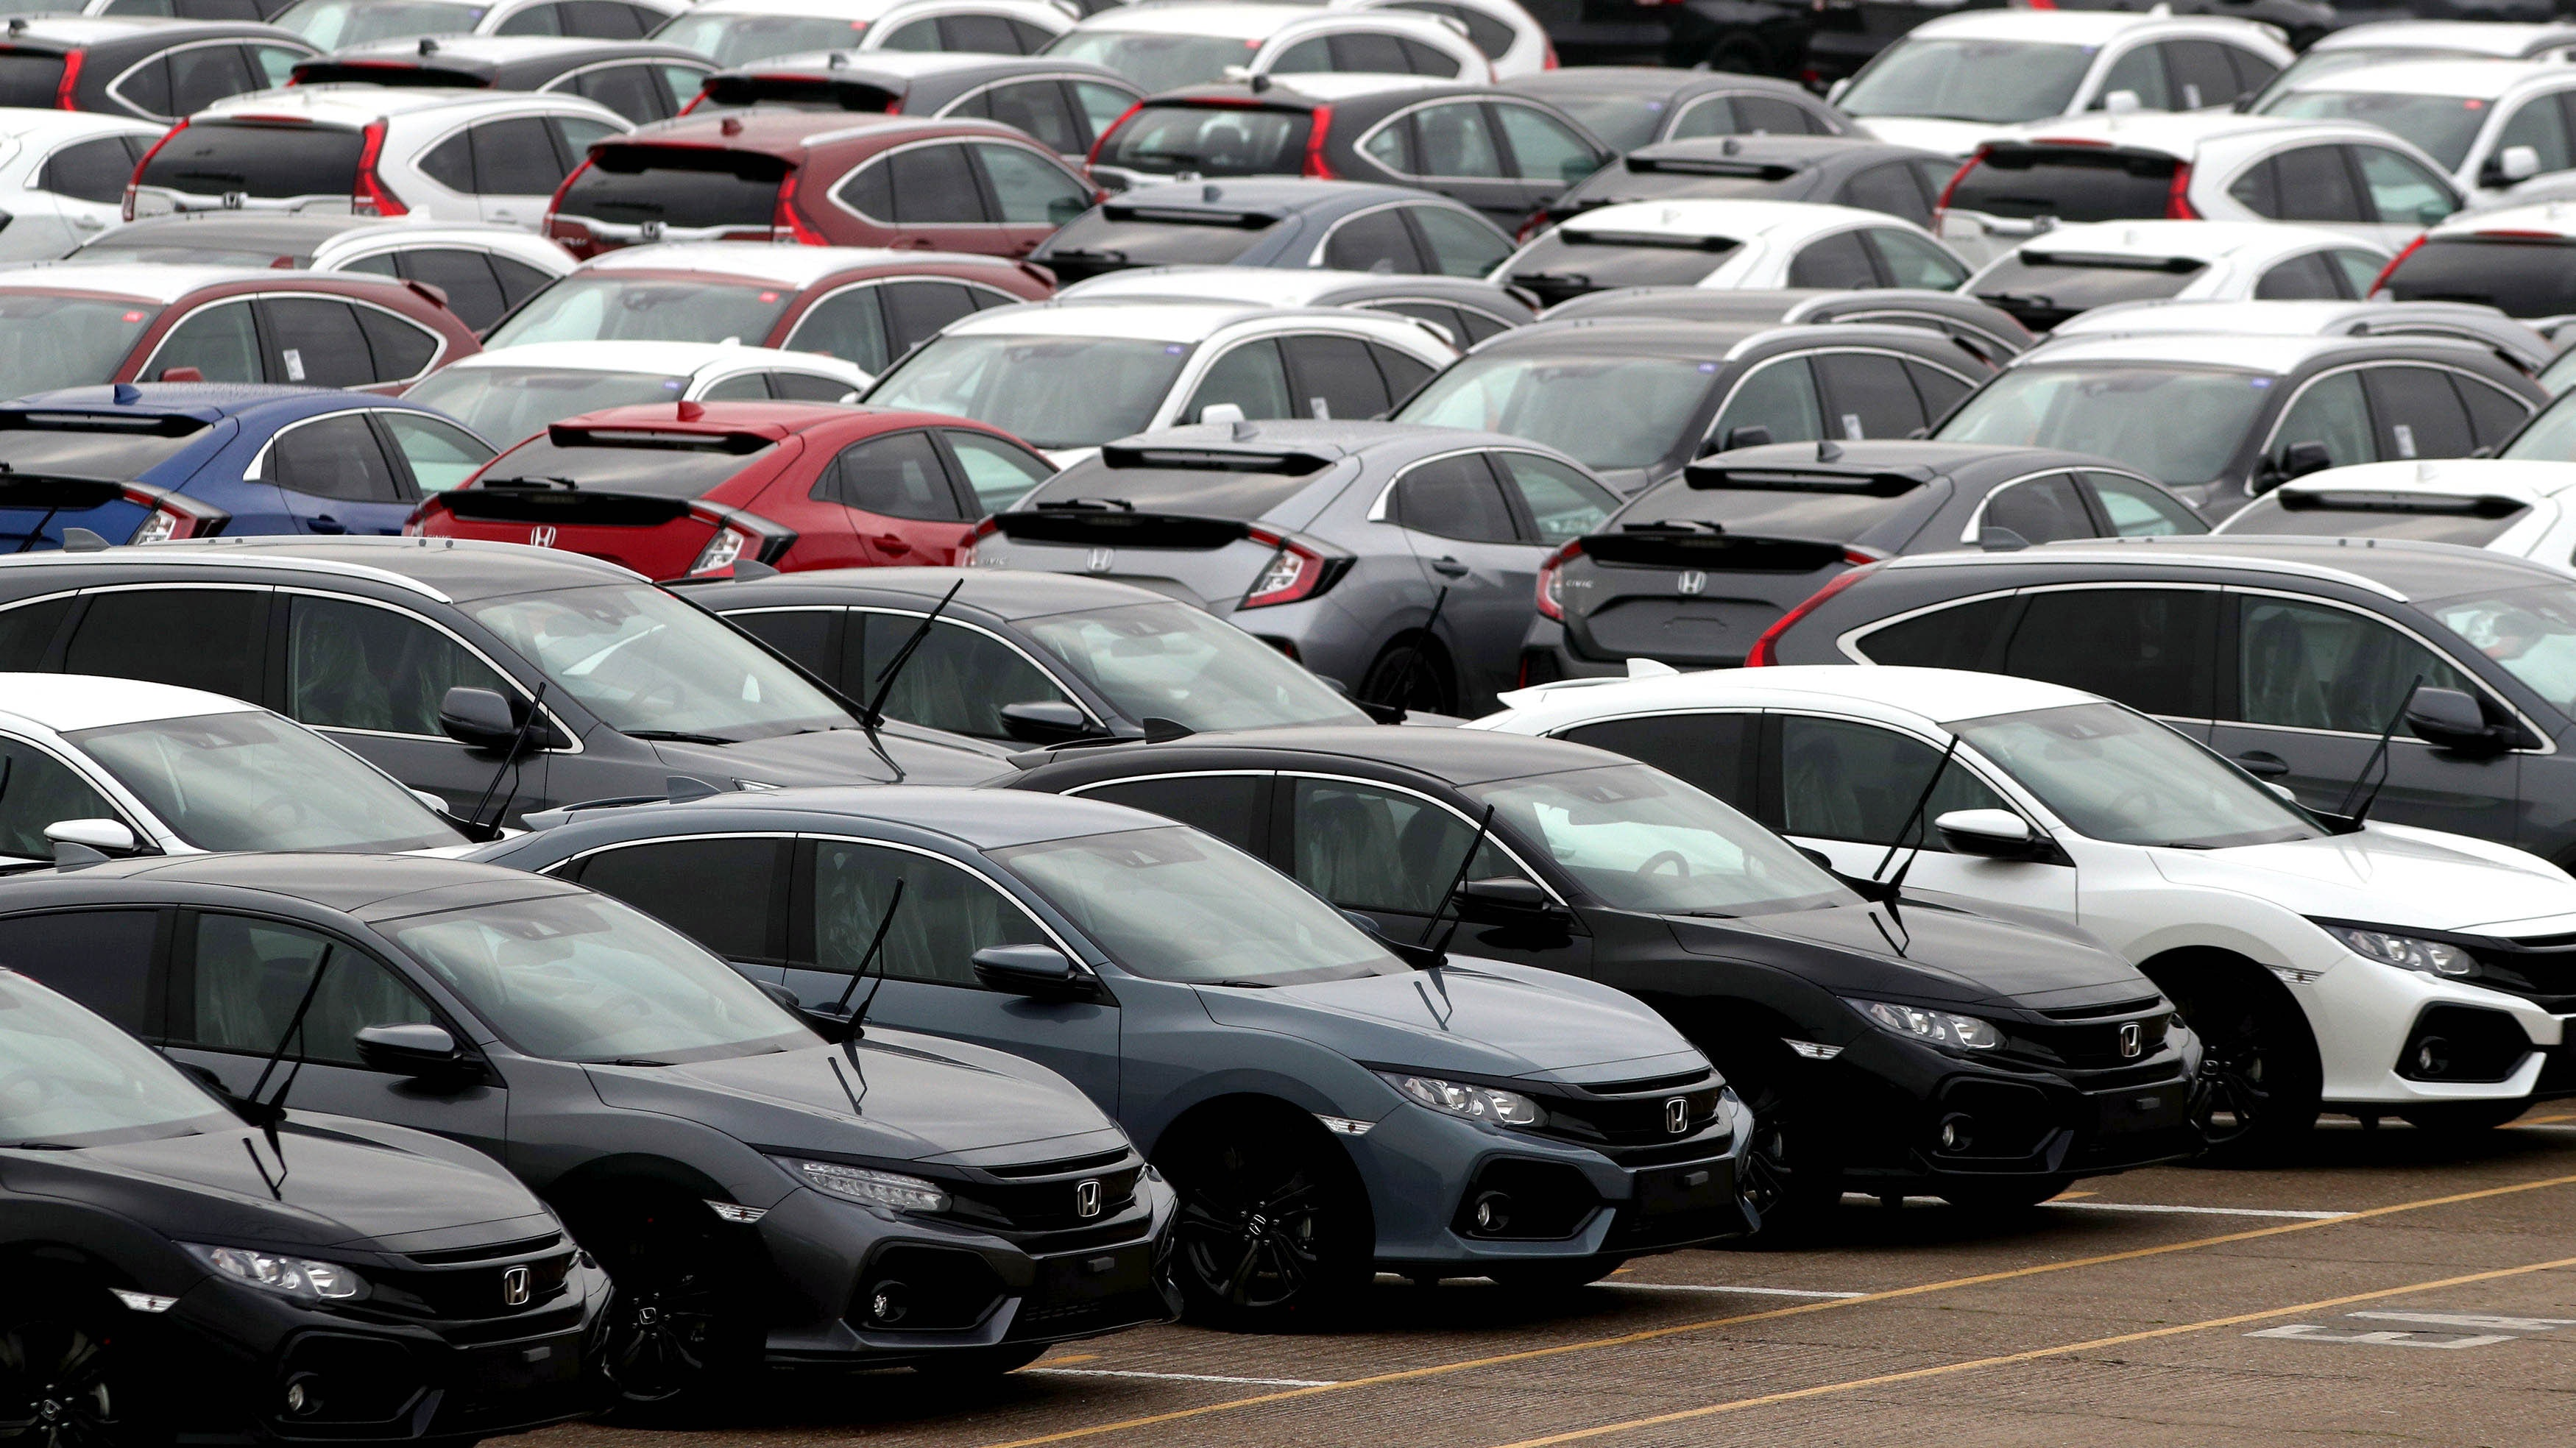 Most recently in the financial crisis: the British auto market breaks